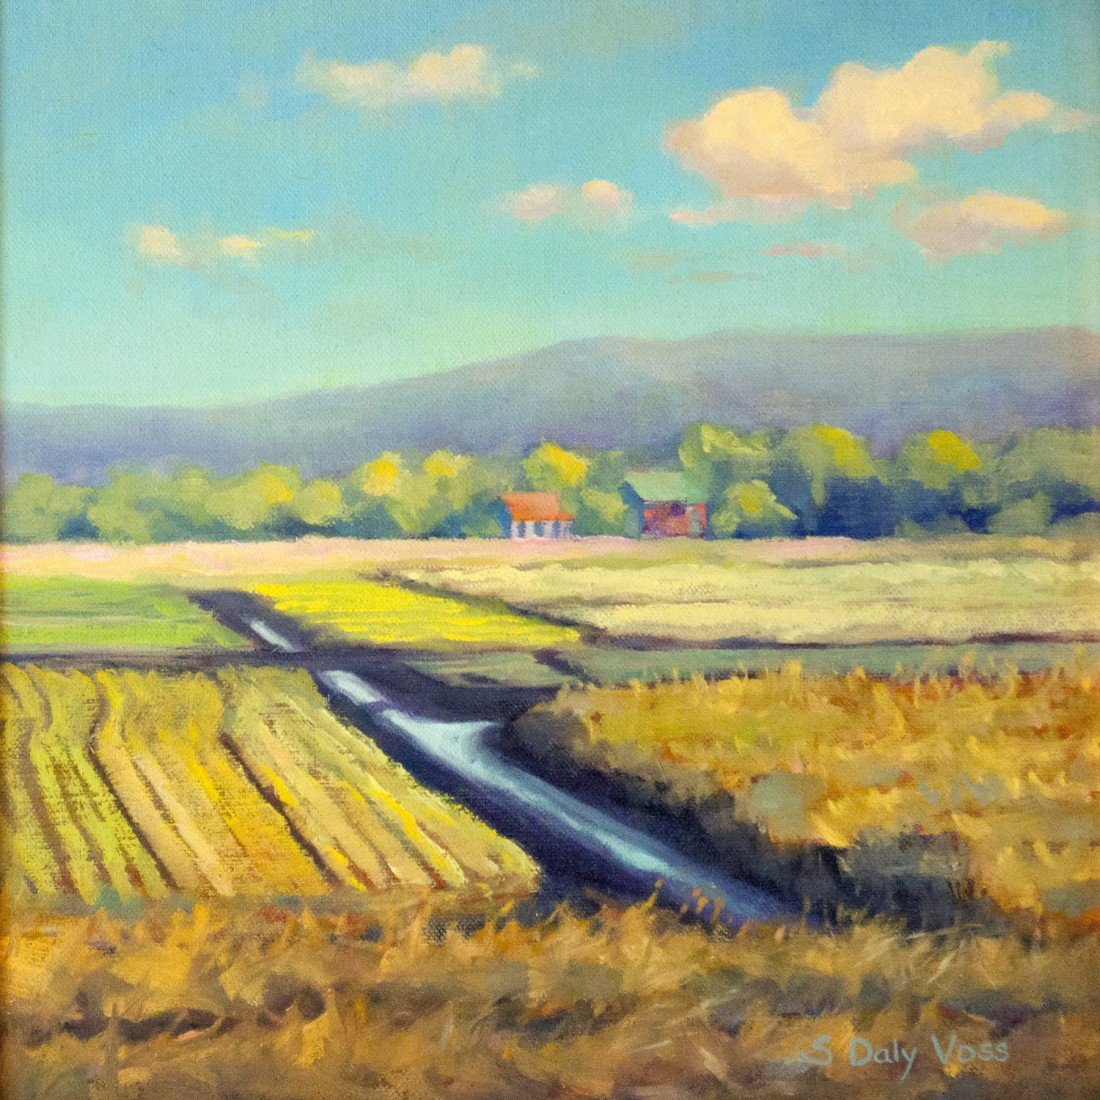 """21: """"Spring in the Black Dirt,"""" Susan Daly Voss"""